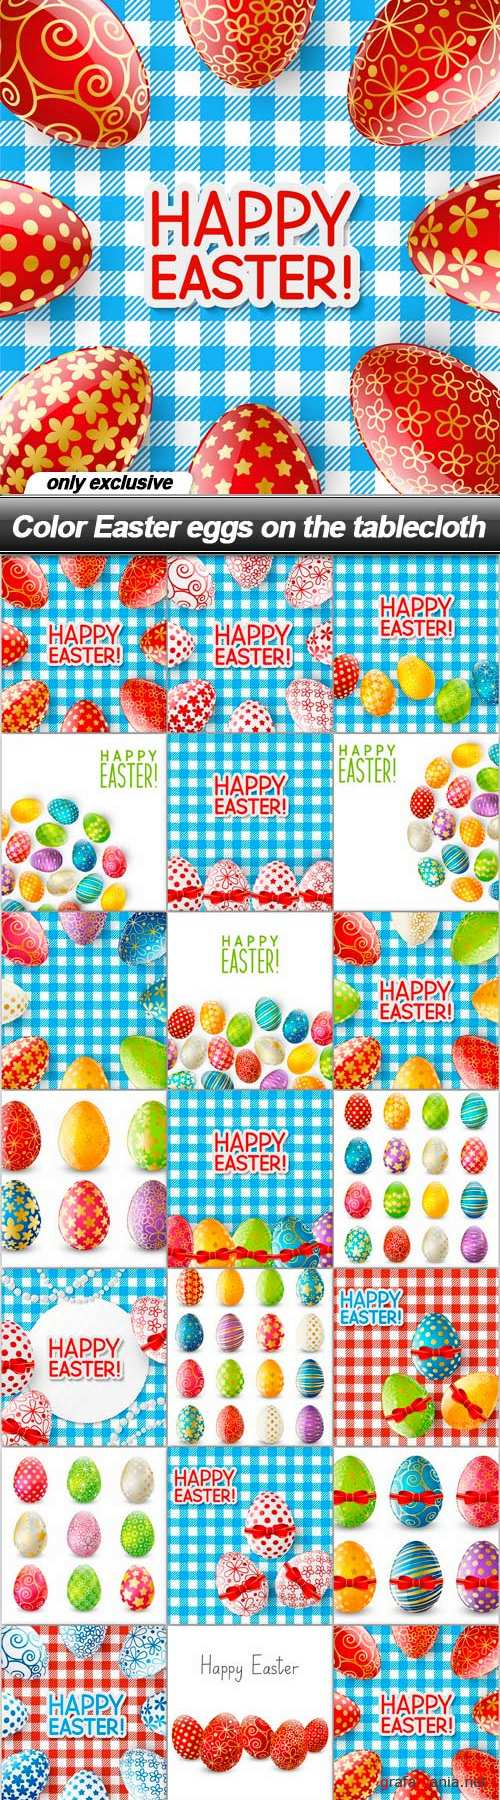 Color Easter eggs on the tablecloth - 20 EPS